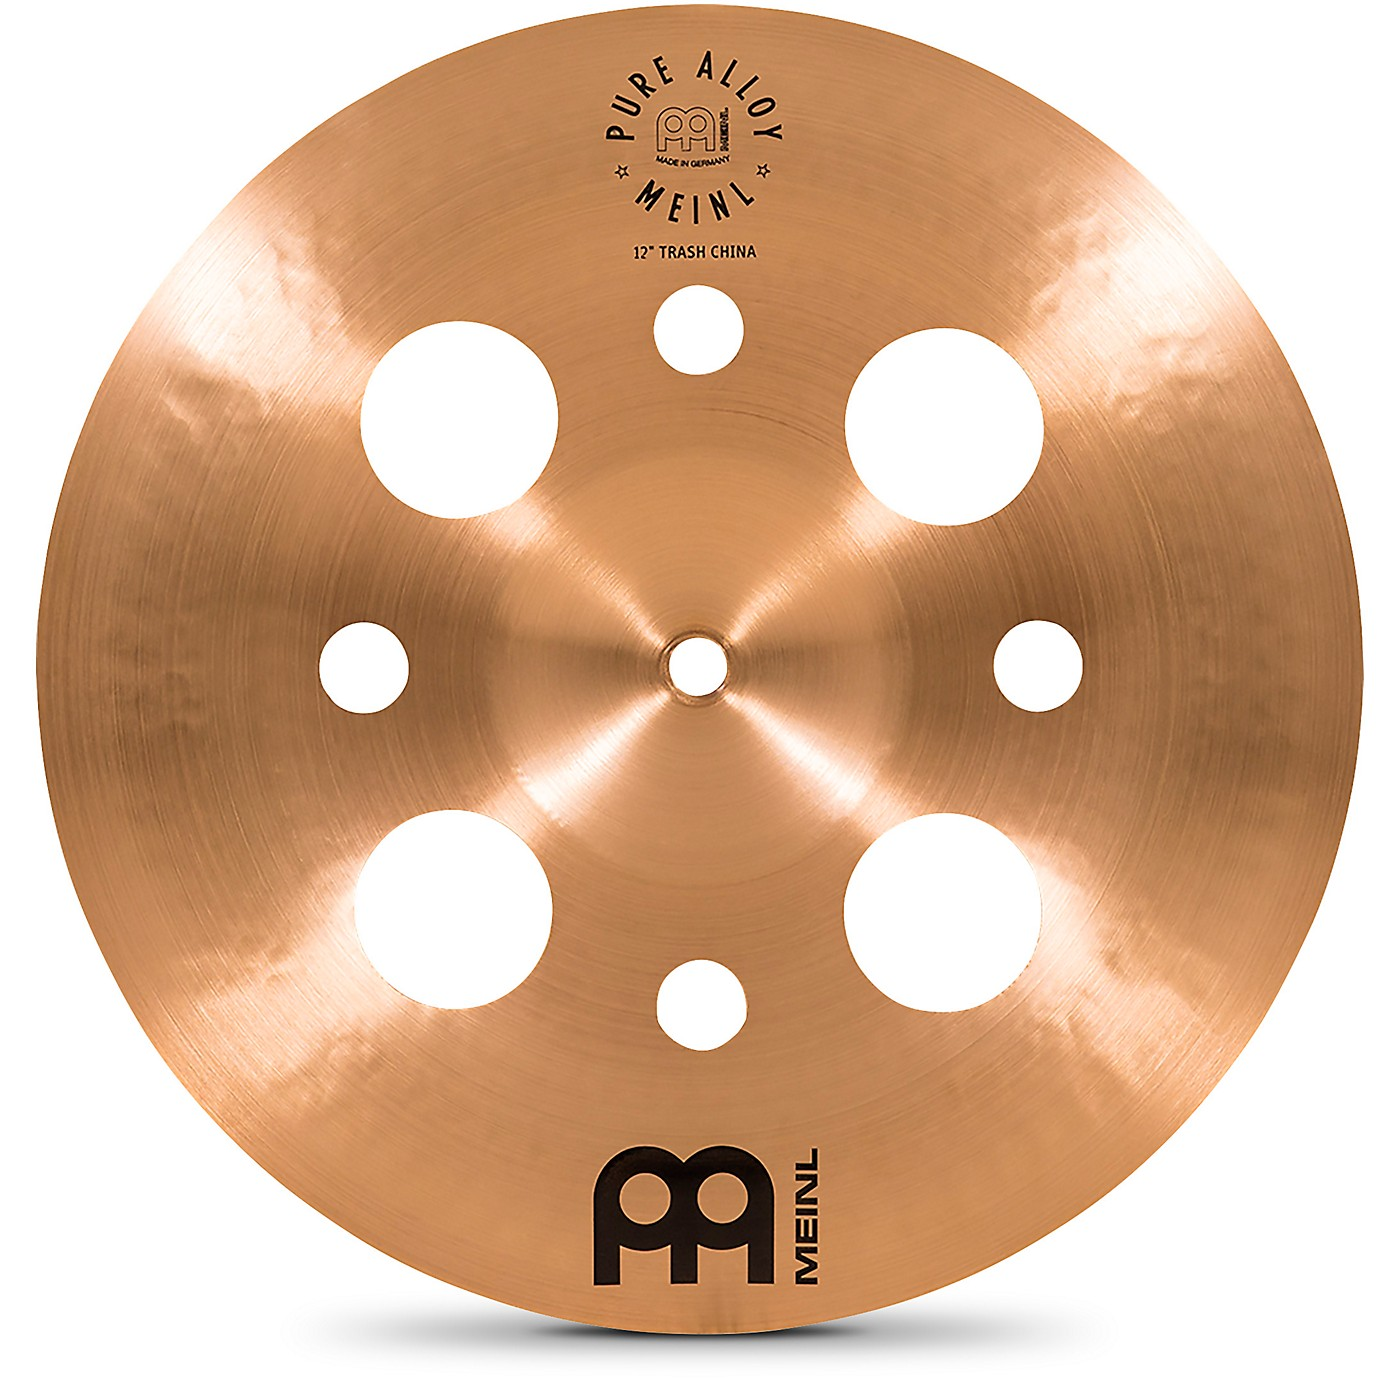 Meinl Pure Alloy Trash China thumbnail